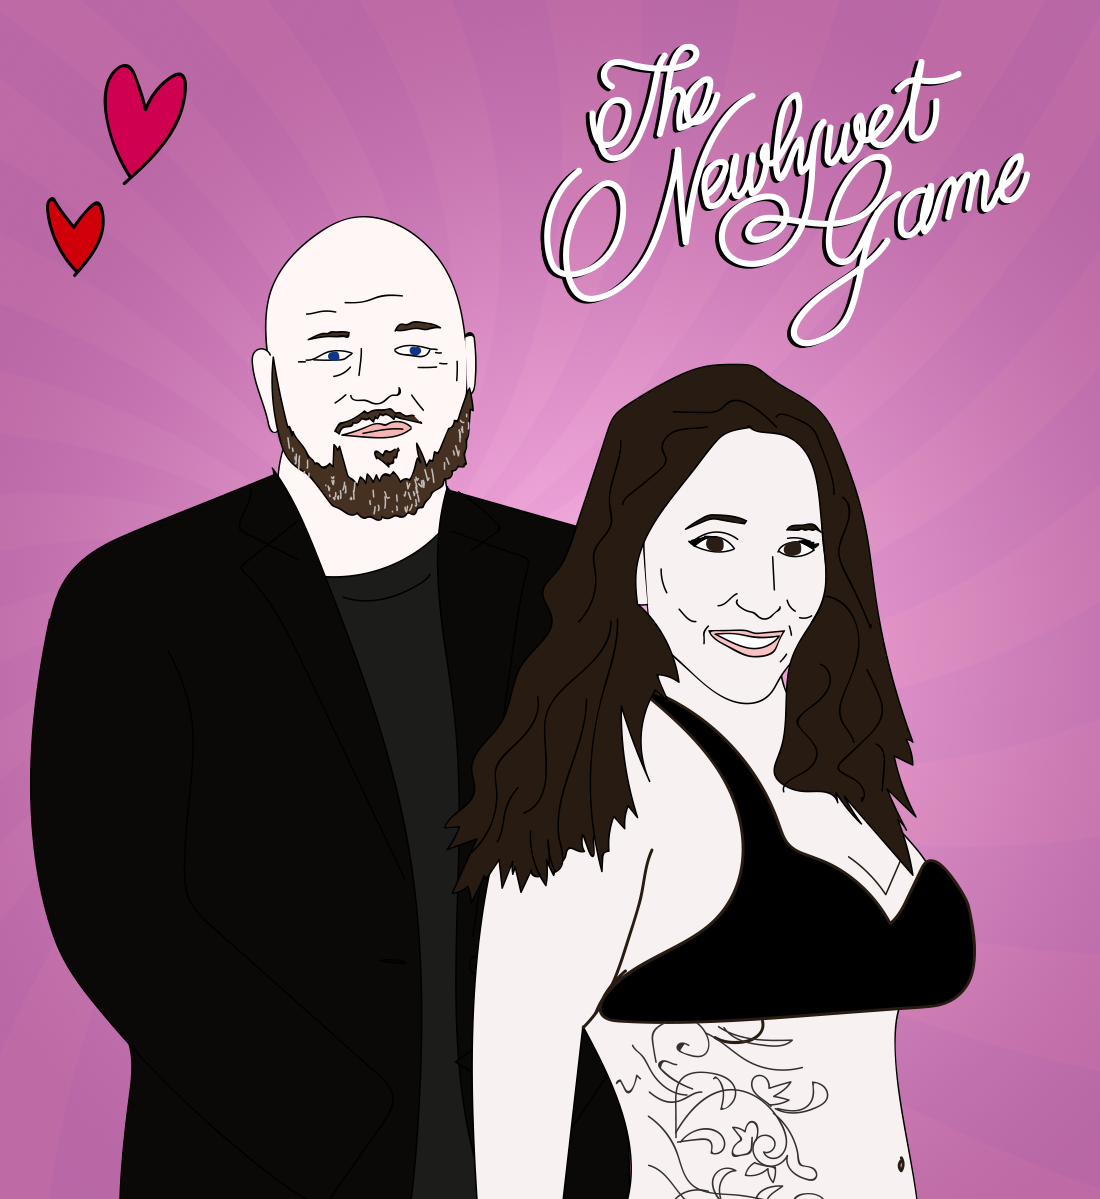 Brent and Katelyn Hatley, Newly Wet Game illustration